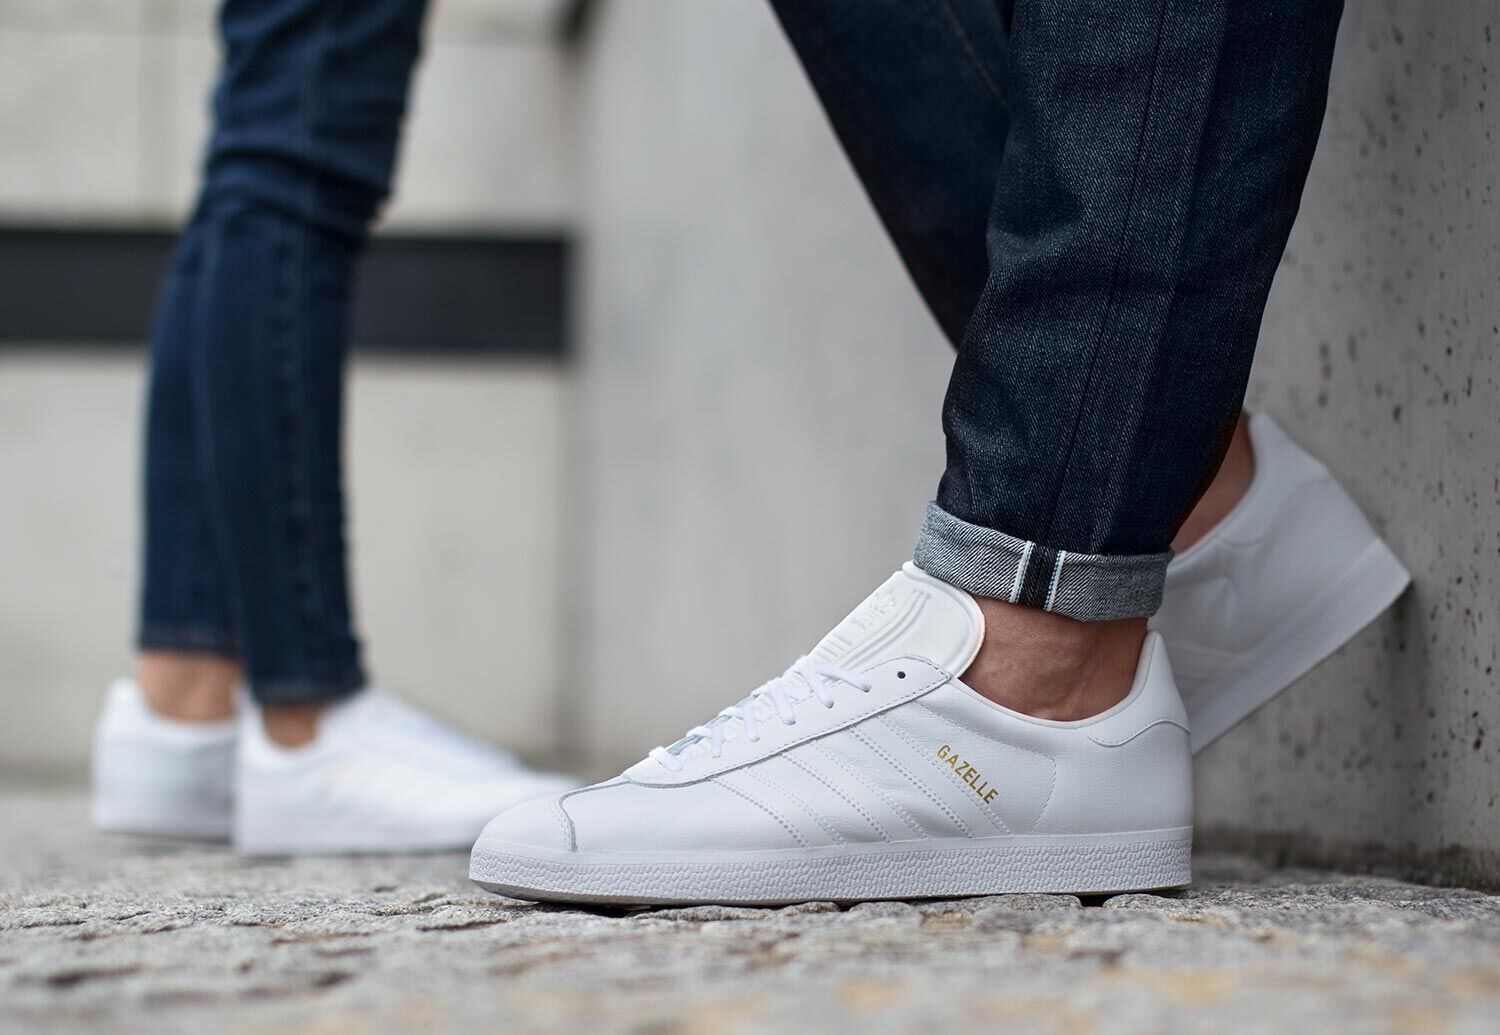 adidas Gazelle - Sneakers Low at Stylefile